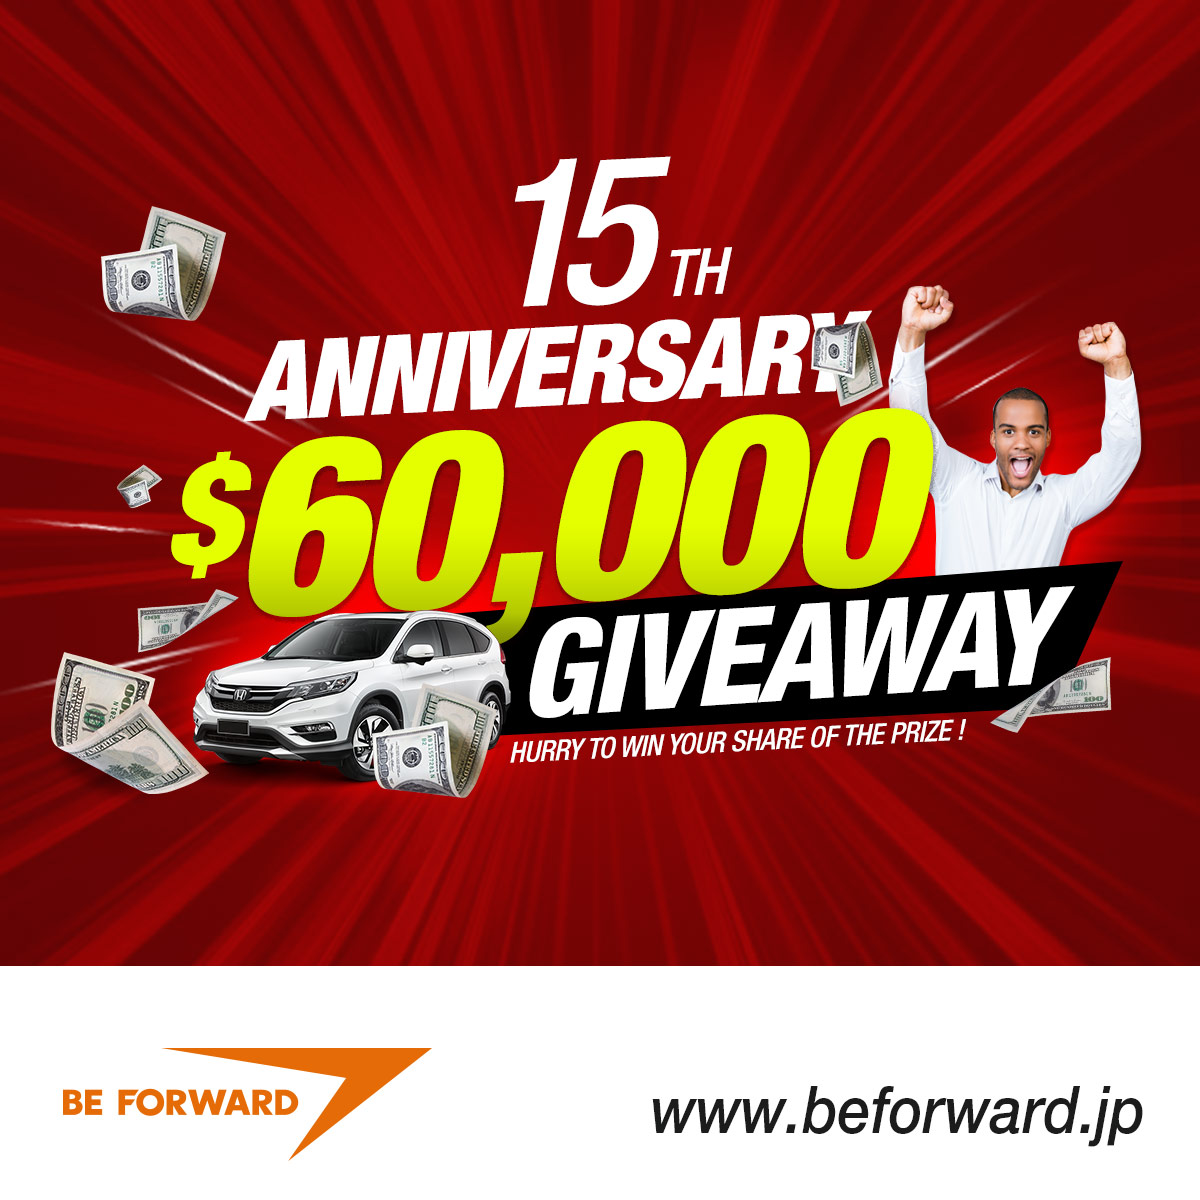 Celebrate 15 years of great deals by entering the BE FORWARD 15th Anniversary Giveaway!